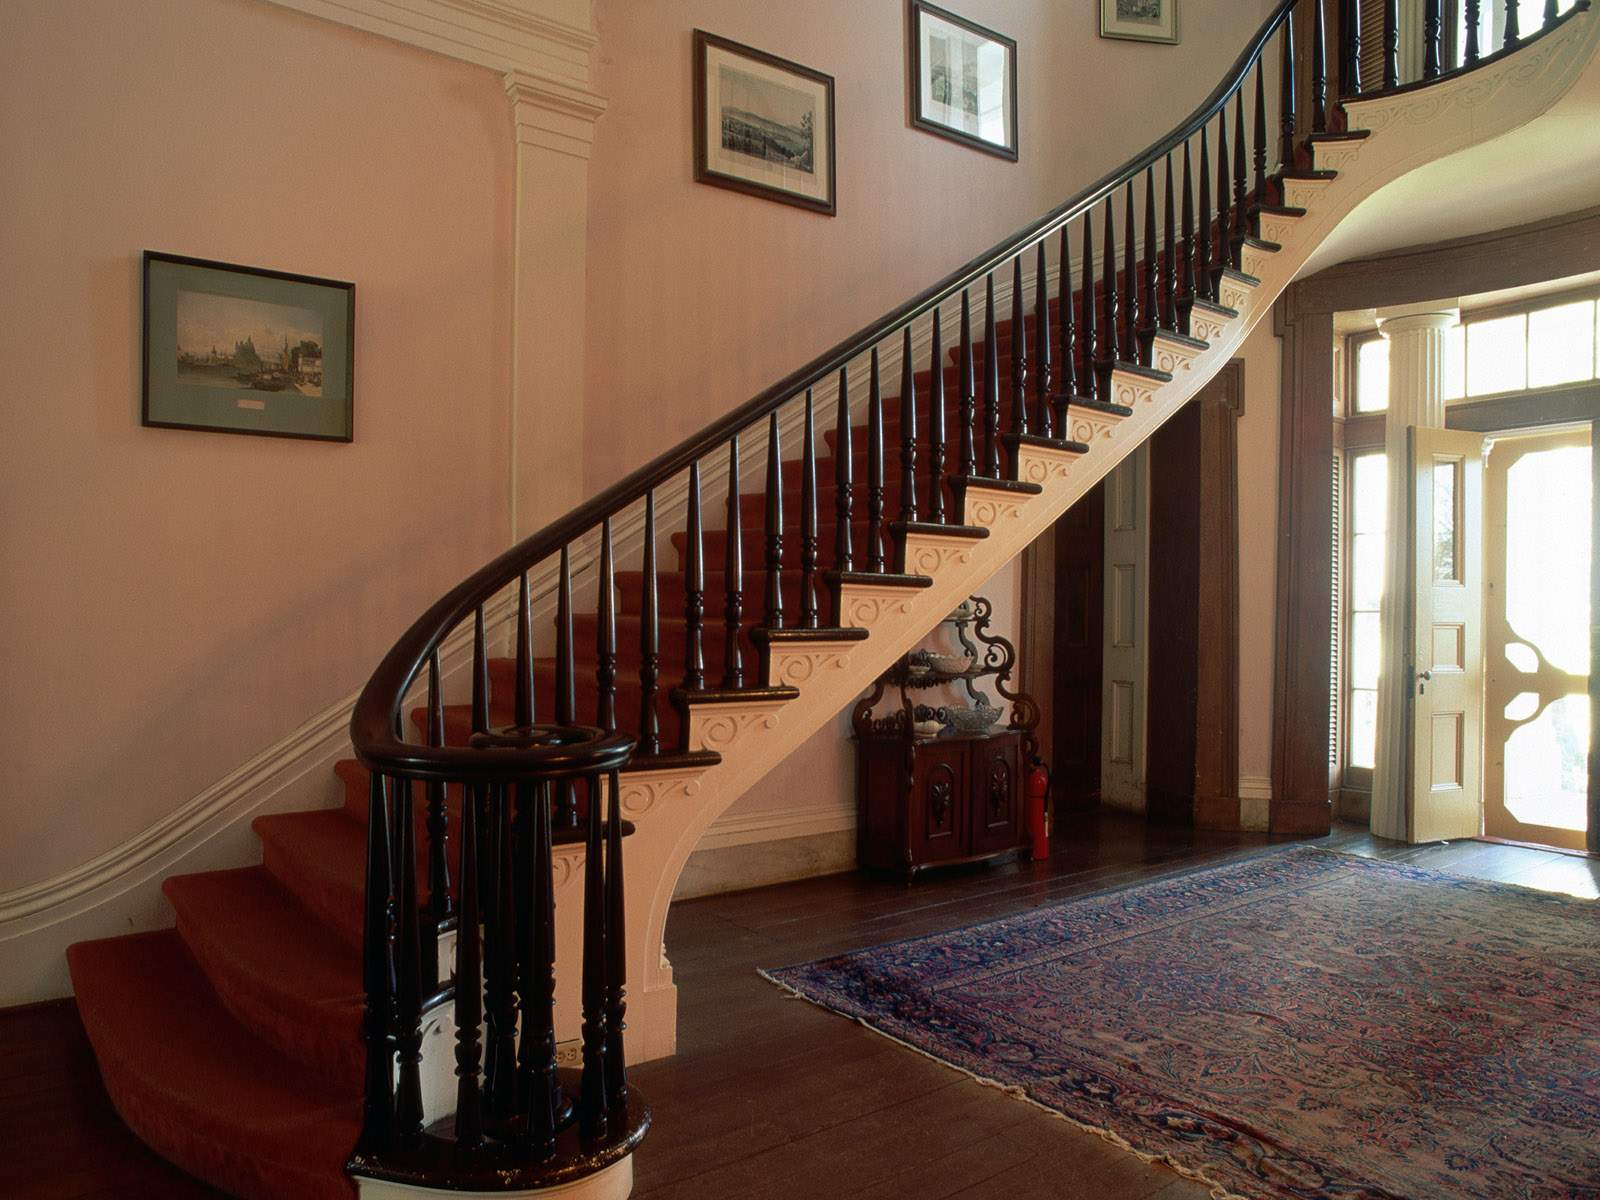 Houseinkerala Org Staircases In Kerala Homes | Stairs For House Design